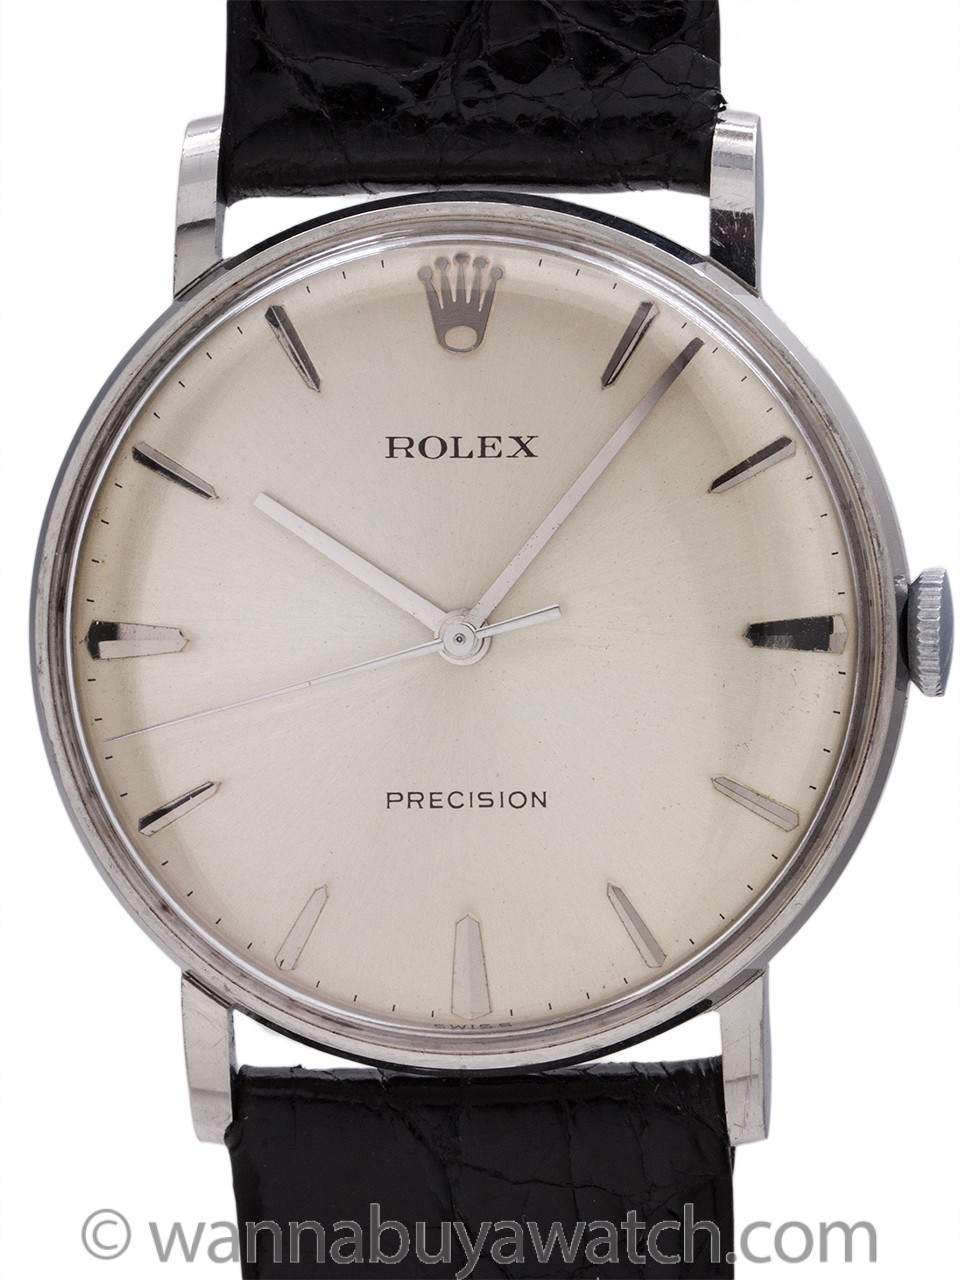 Rolex Precision Dress Model Stainless Steel circa 1960's